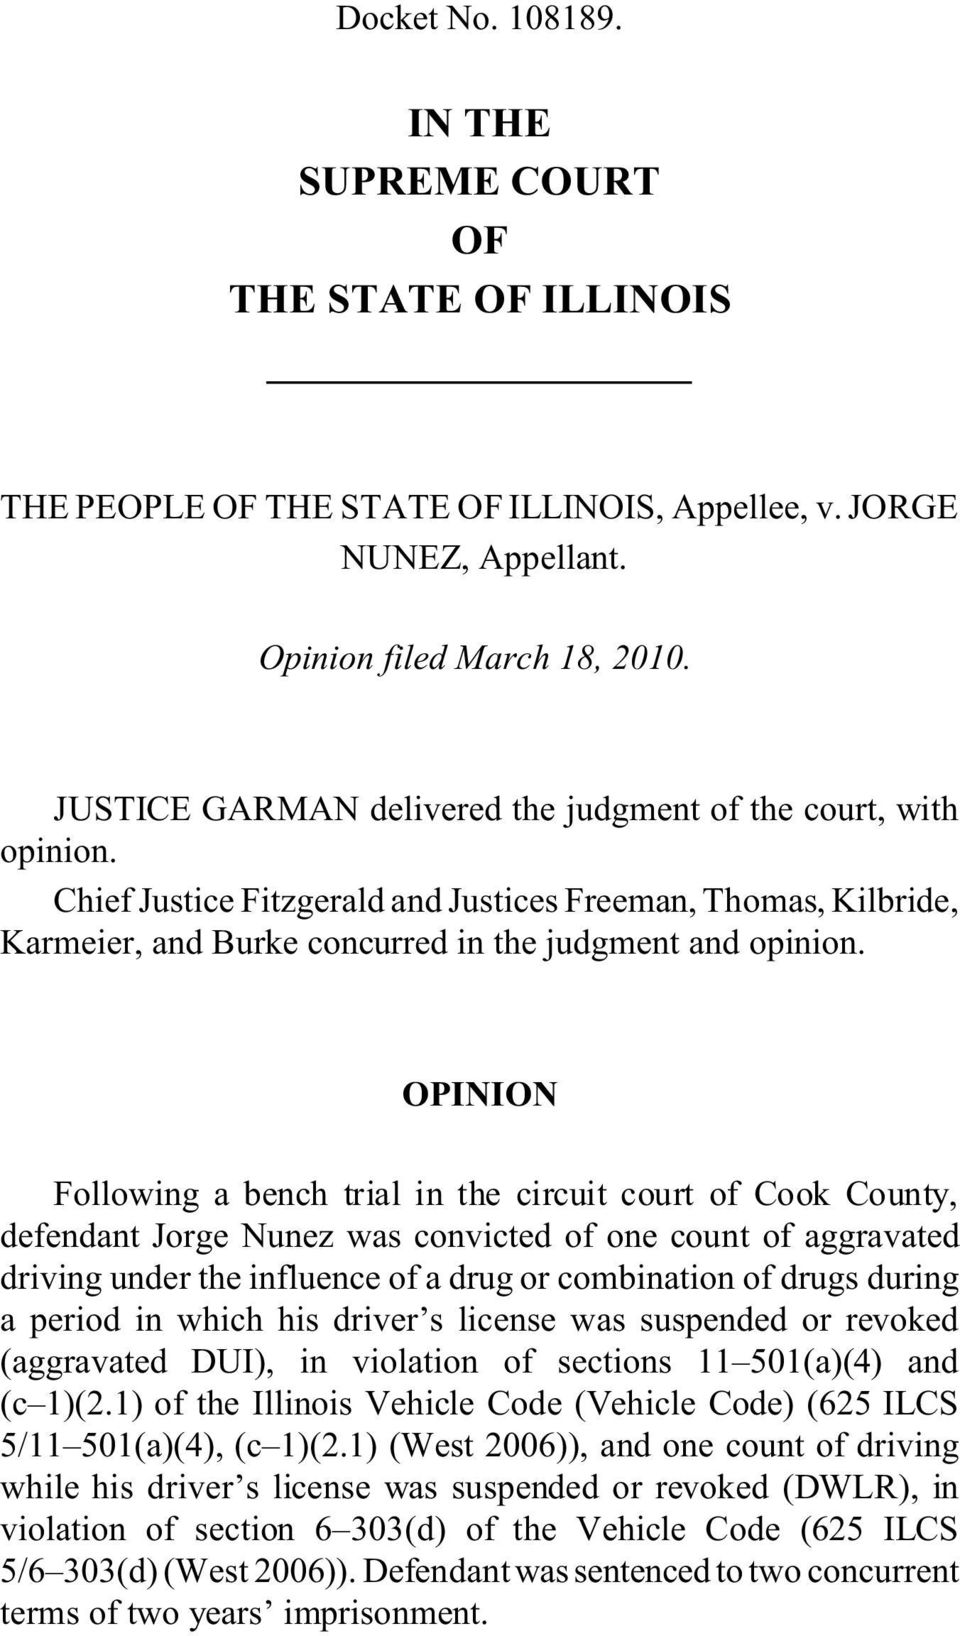 OPINION Following a bench trial in the circuit court of Cook County, defendant Jorge Nunez was convicted of one count of aggravated driving under the influence of a drug or combination of drugs